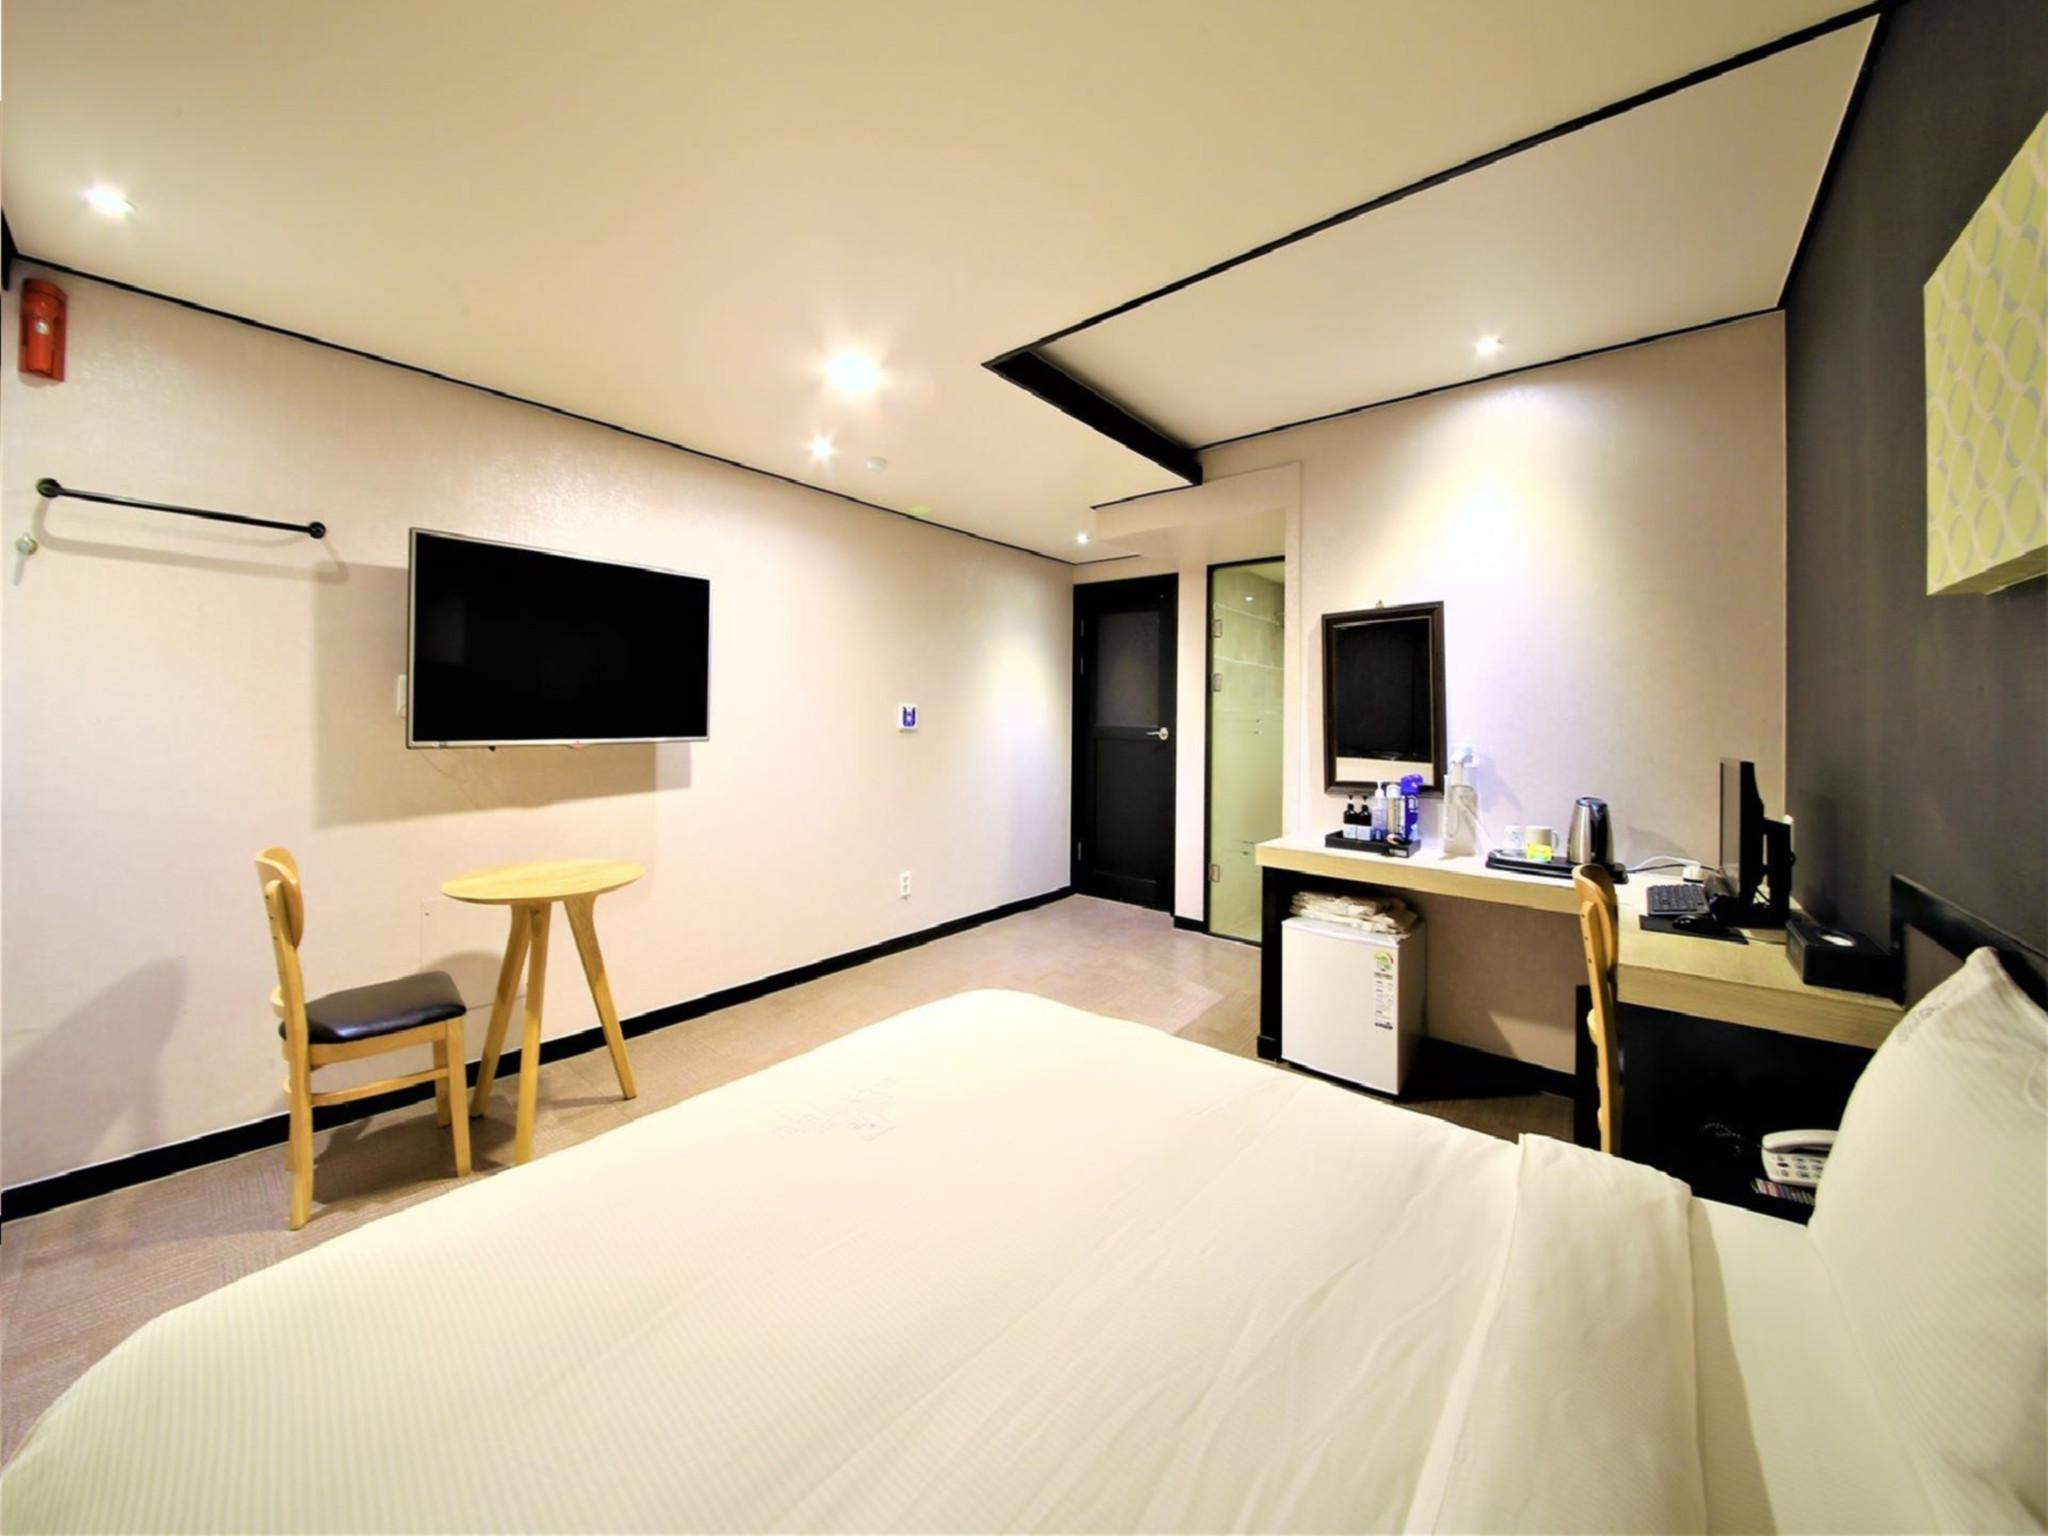 Best price on elysee hotel busan in busan reviews for Boutique hotel ytt nampo